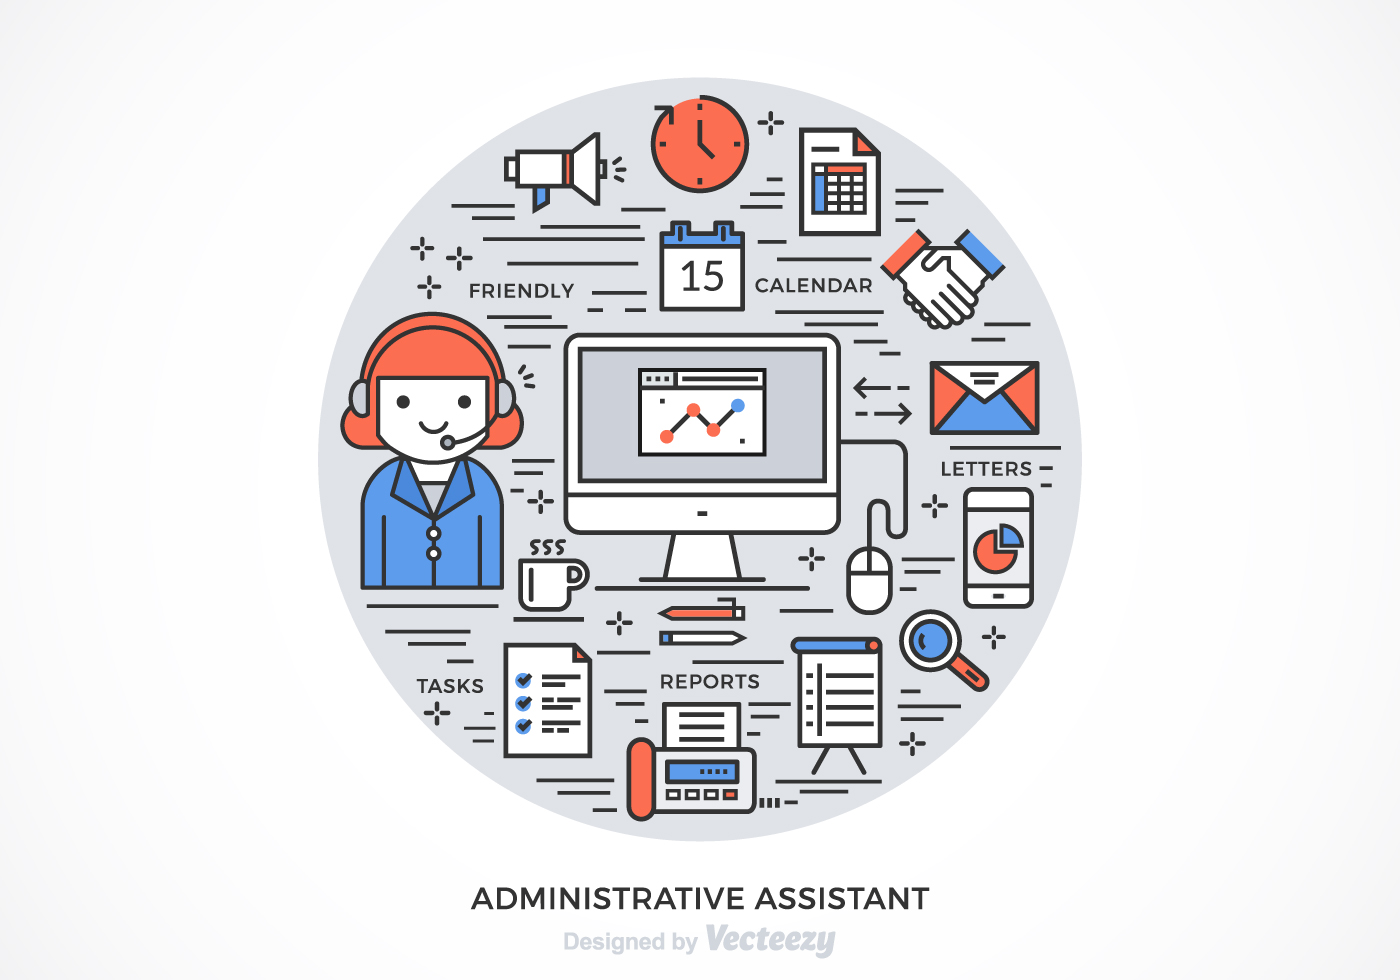 Administrative Assistant free asme downloads